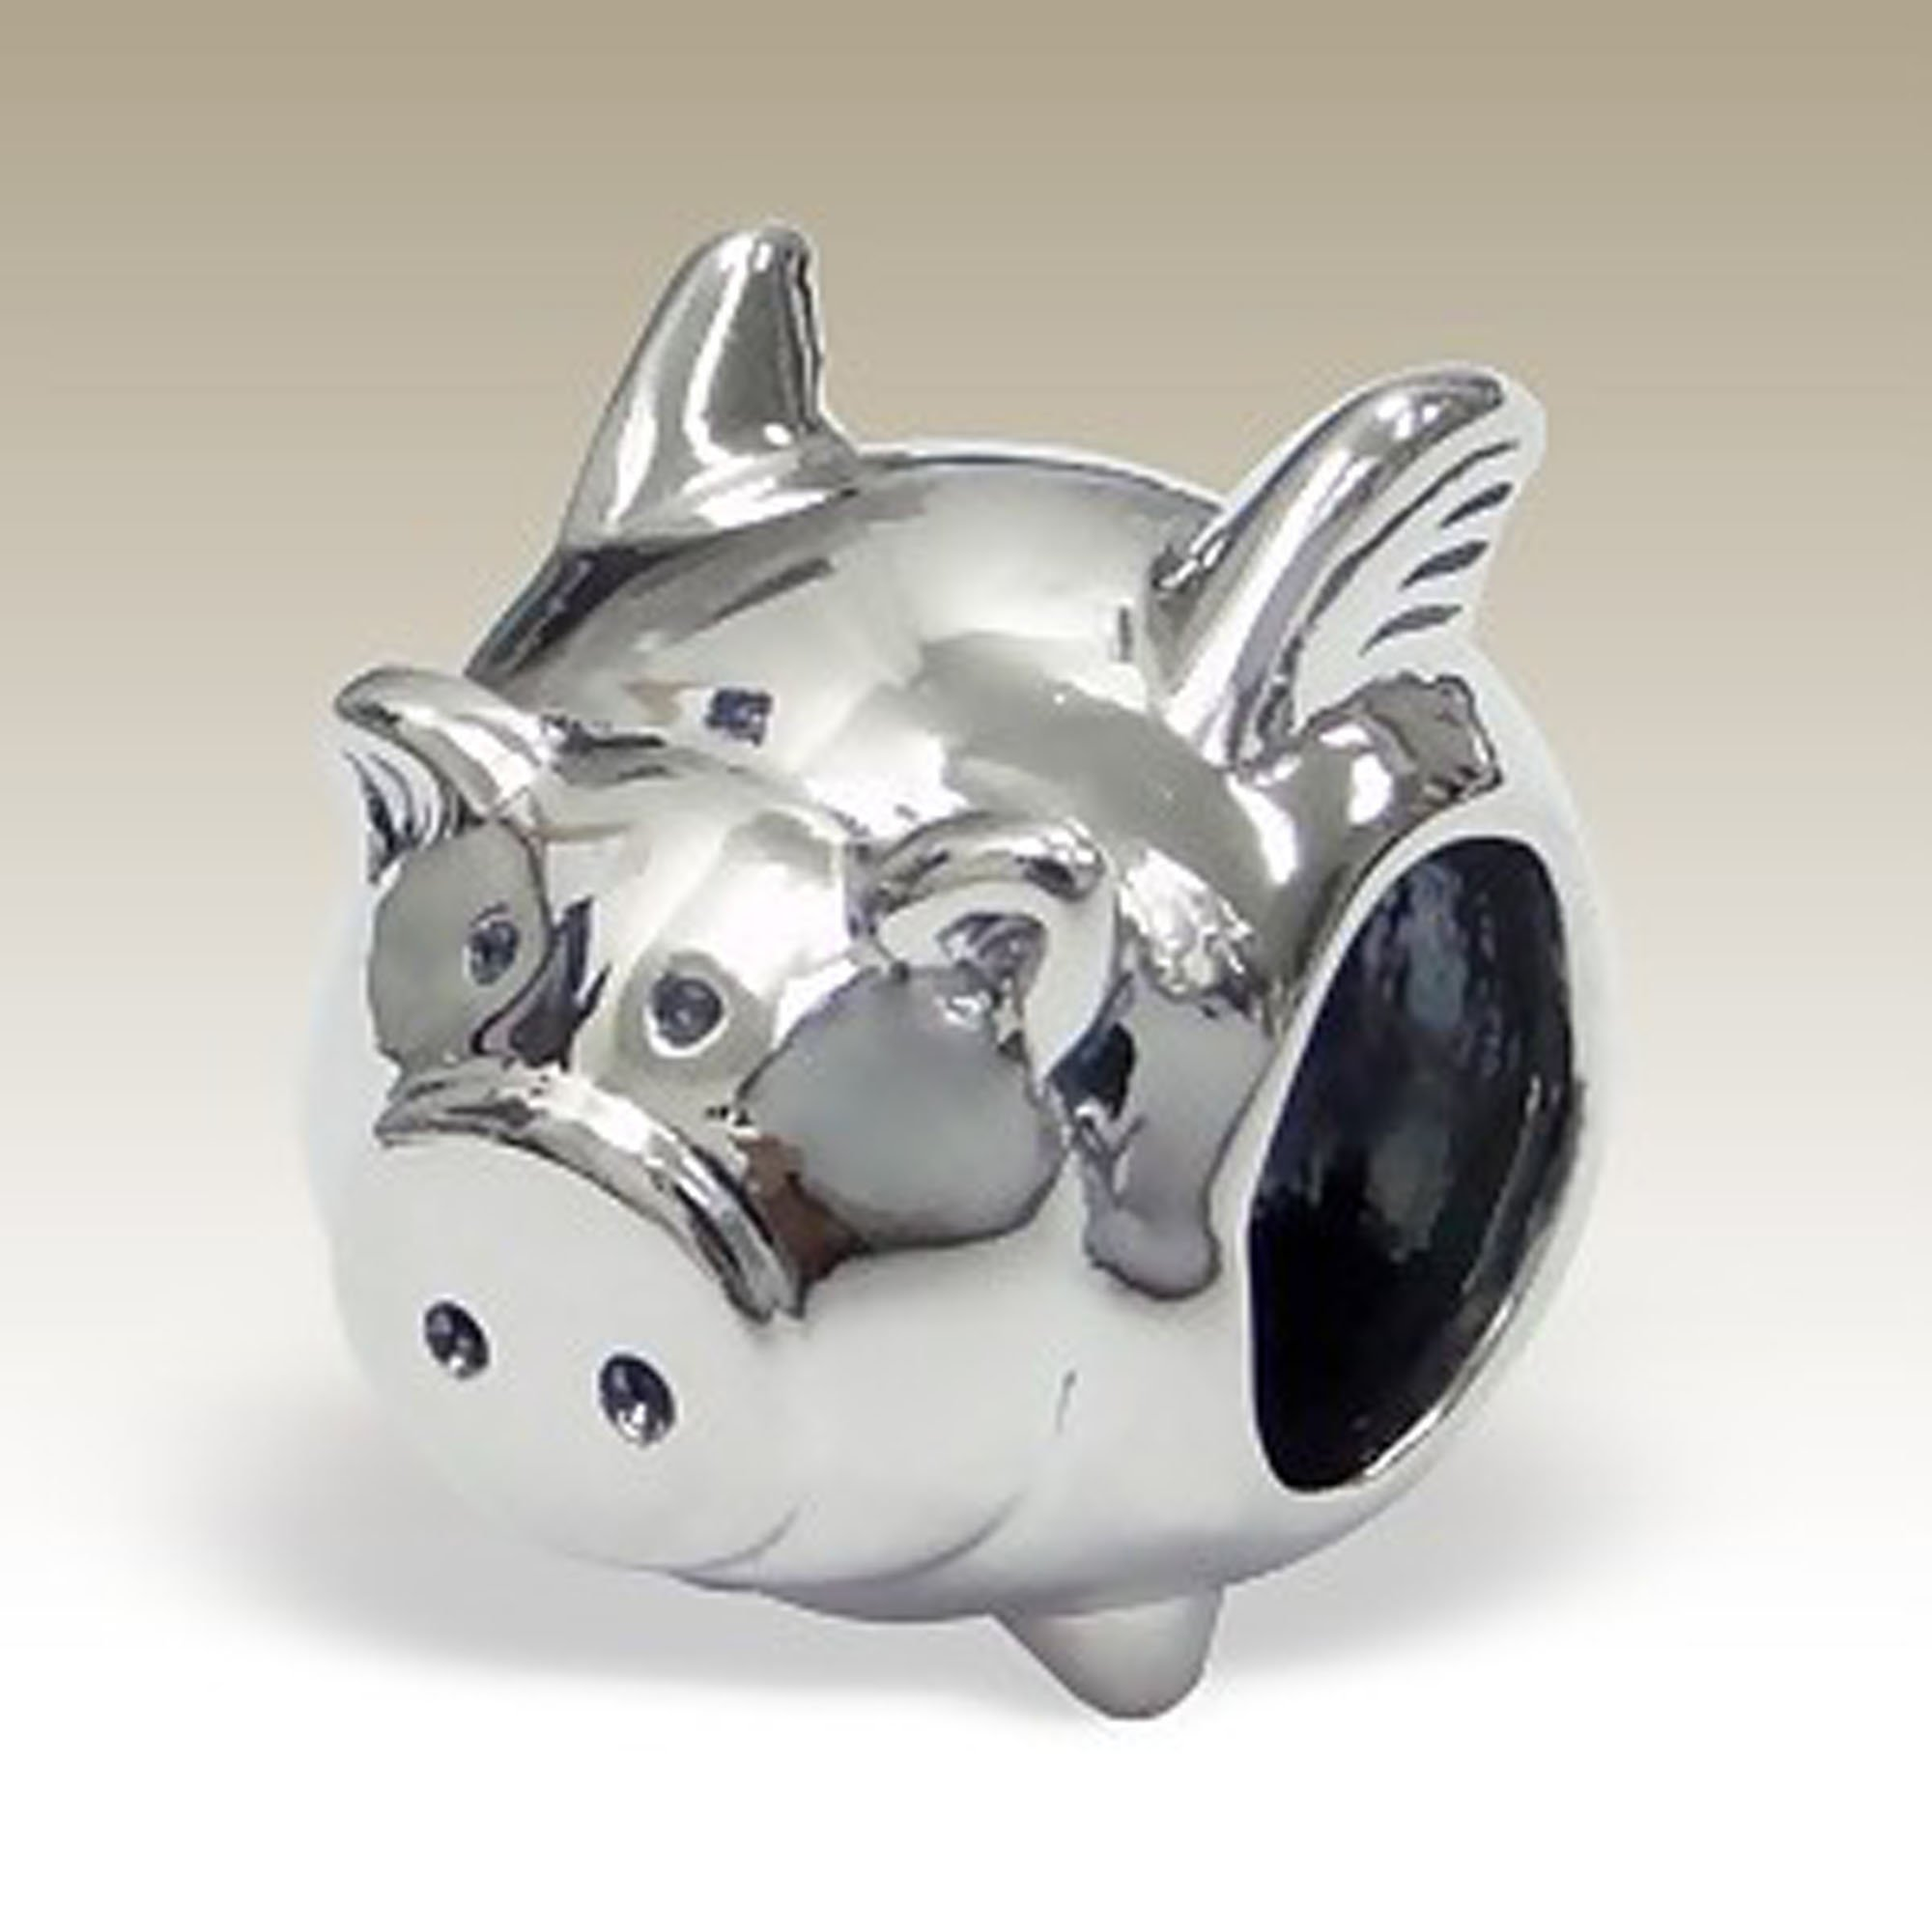 Flying Pig Charm, Pig with Wings, 925 Sterling Silver for Charm Bracelet (E5447)